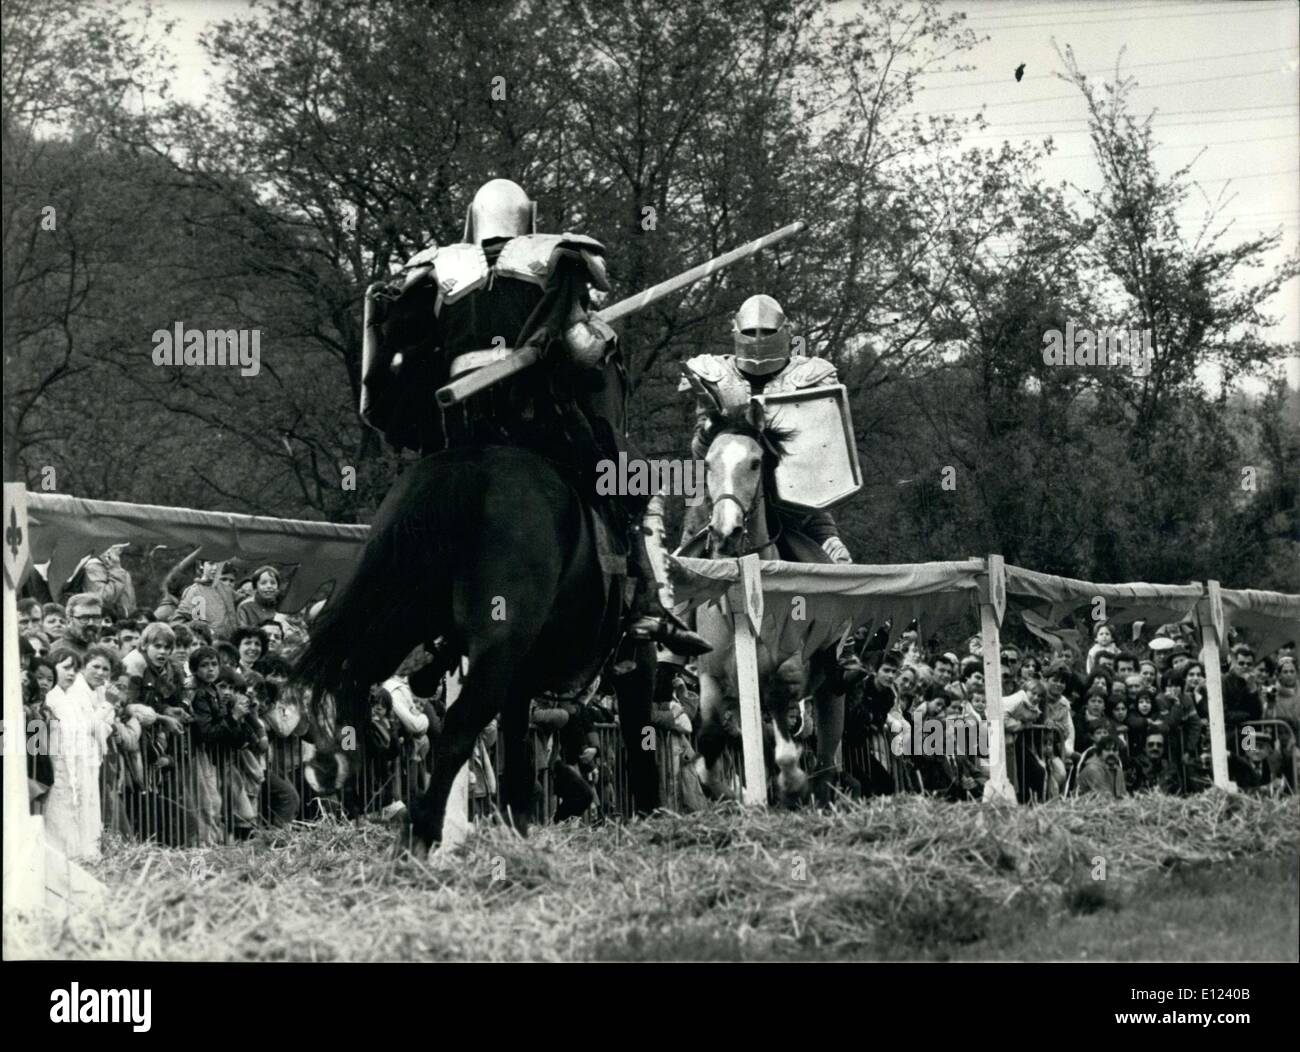 May 13, 1985 - Middle Ages Archers Ceremony Held in Gagny, Paris Suburb - Stock Image